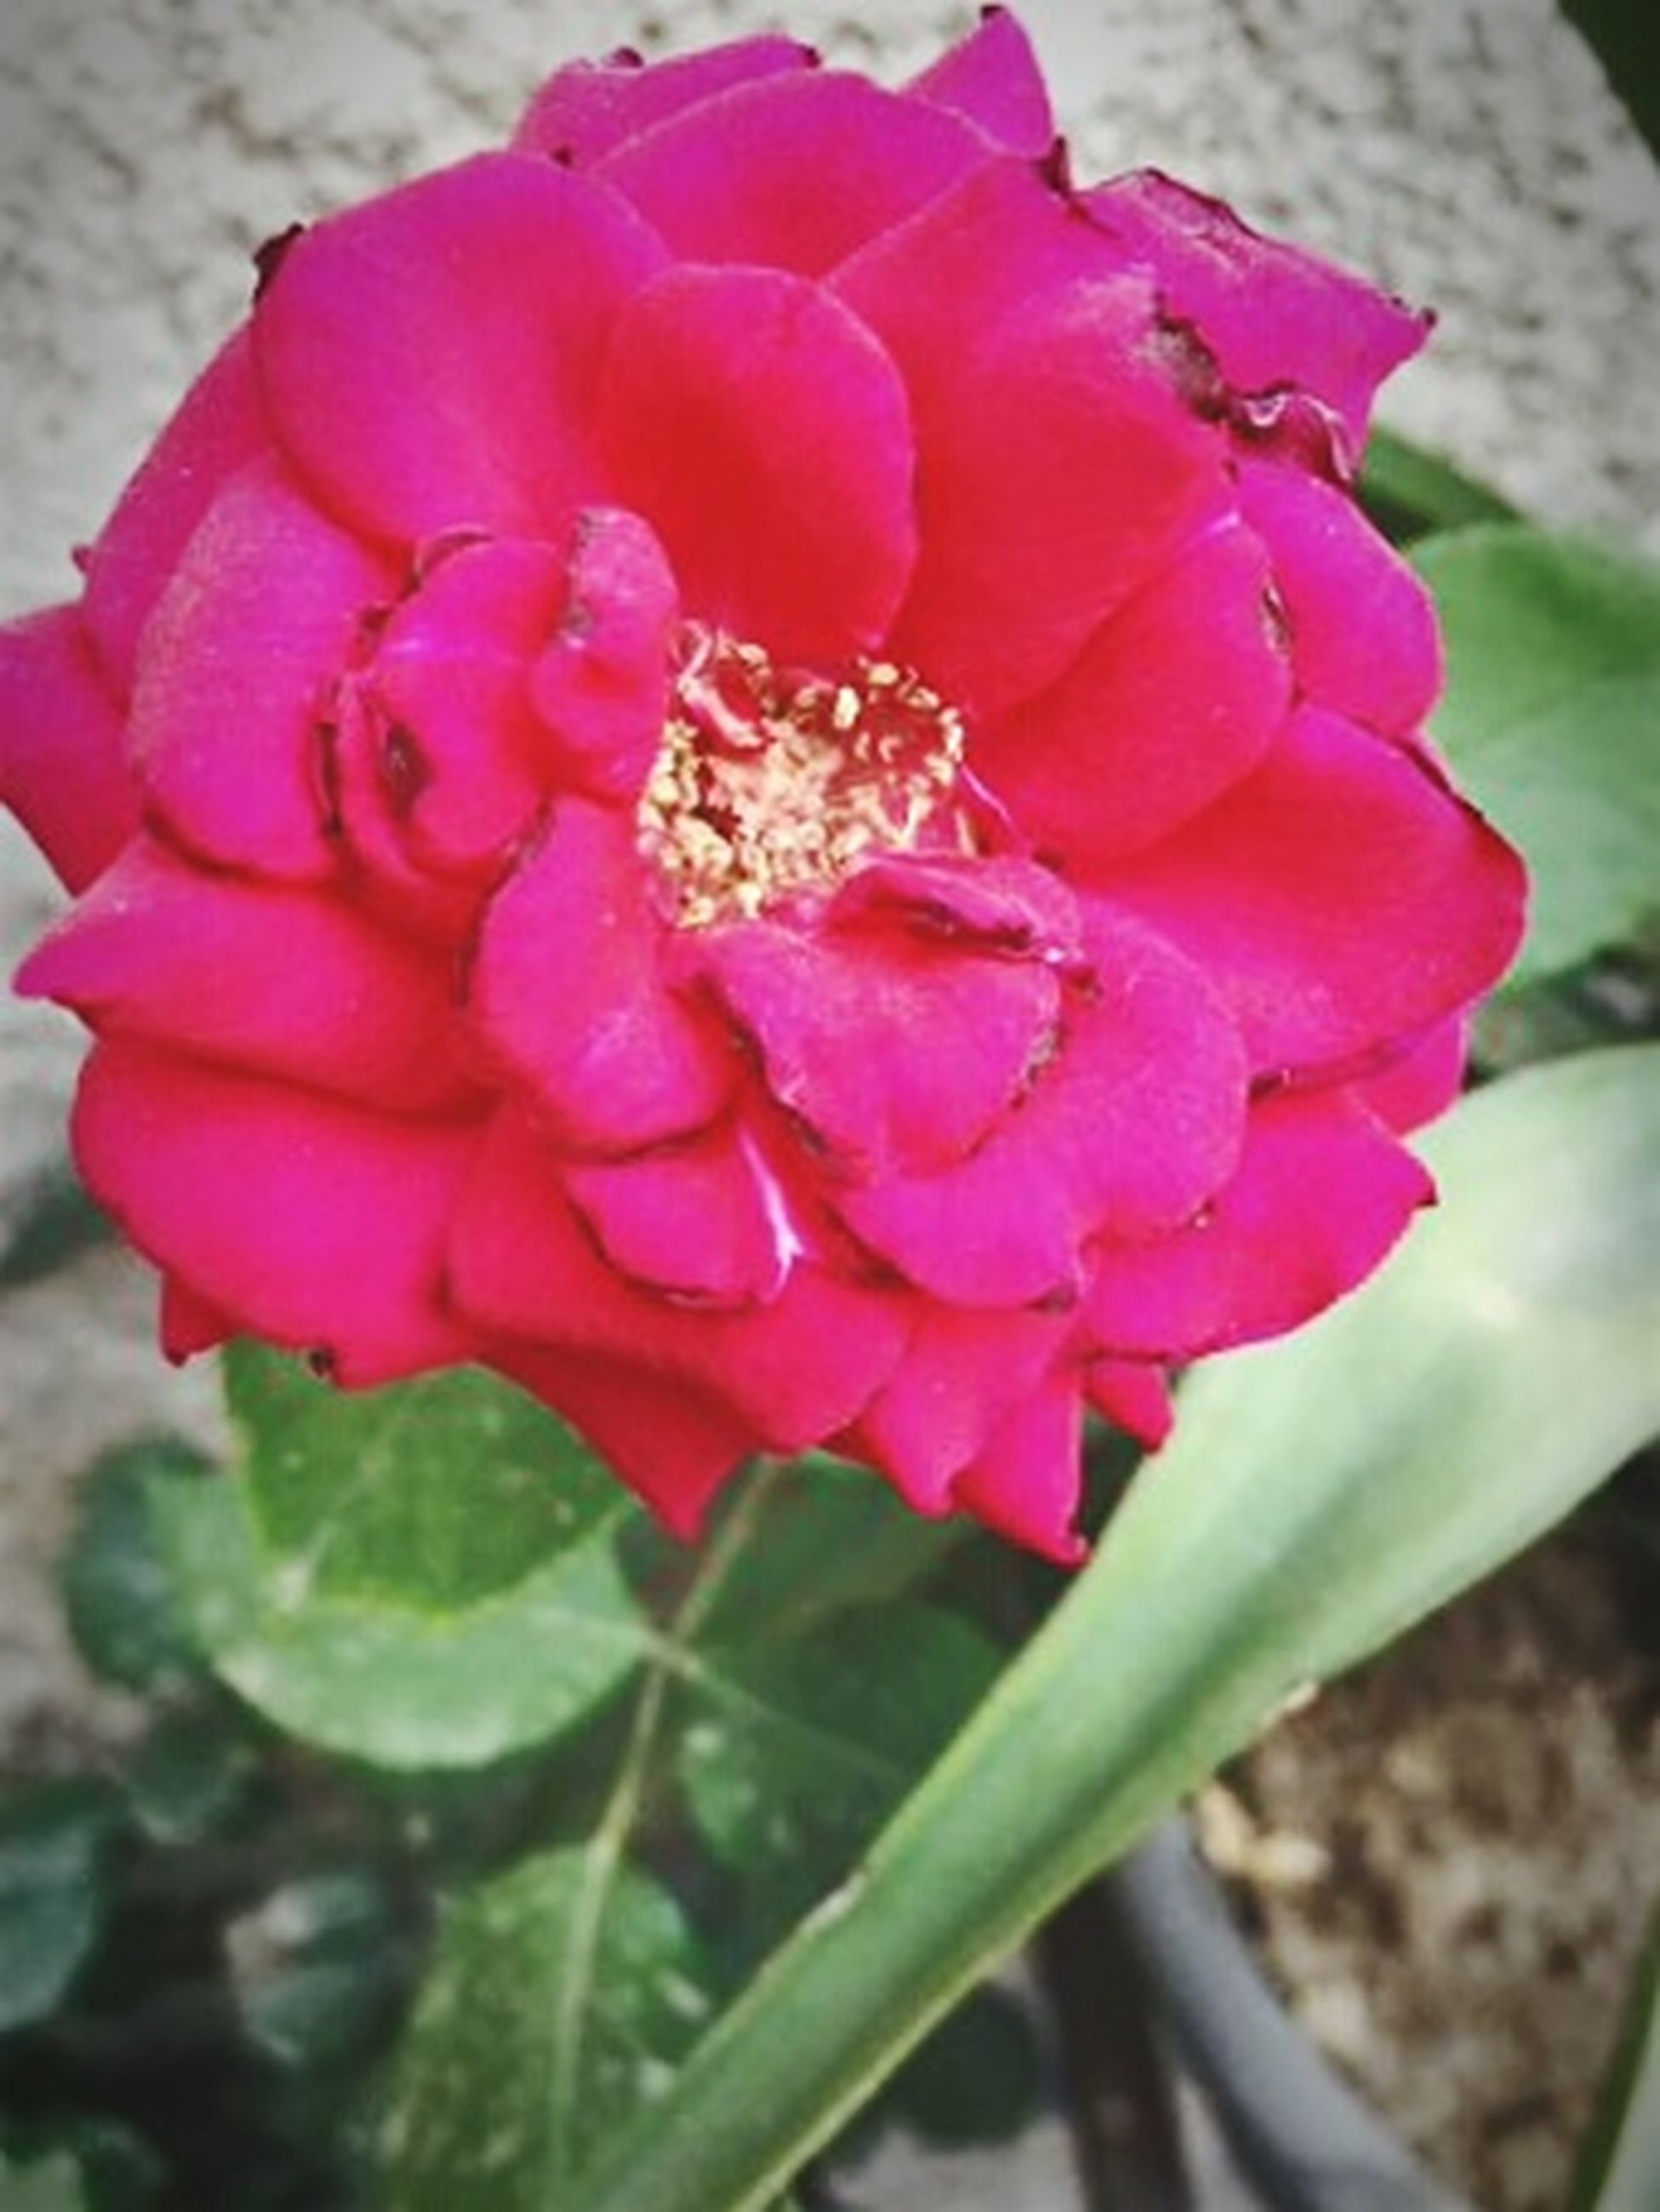 flower, nature, petal, plant, pink color, growth, beauty in nature, no people, blooming, close-up, outdoors, day, water, freshness, flower head